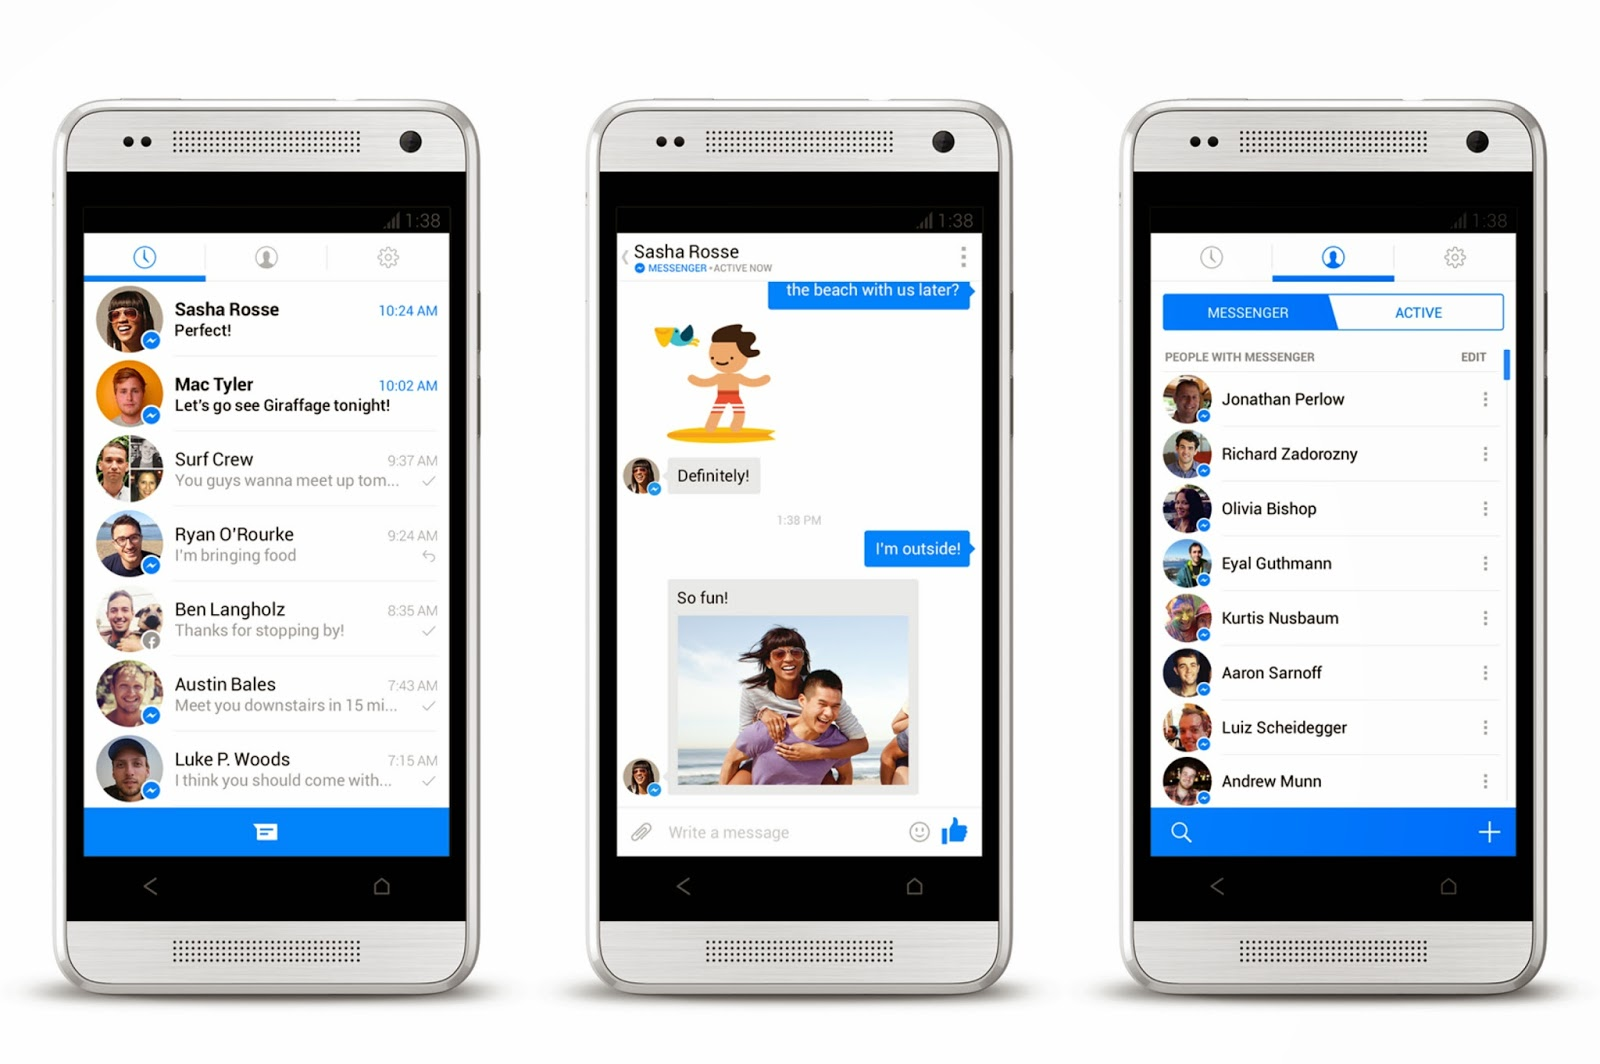 Facebook Messenger 22.0.0.19.14